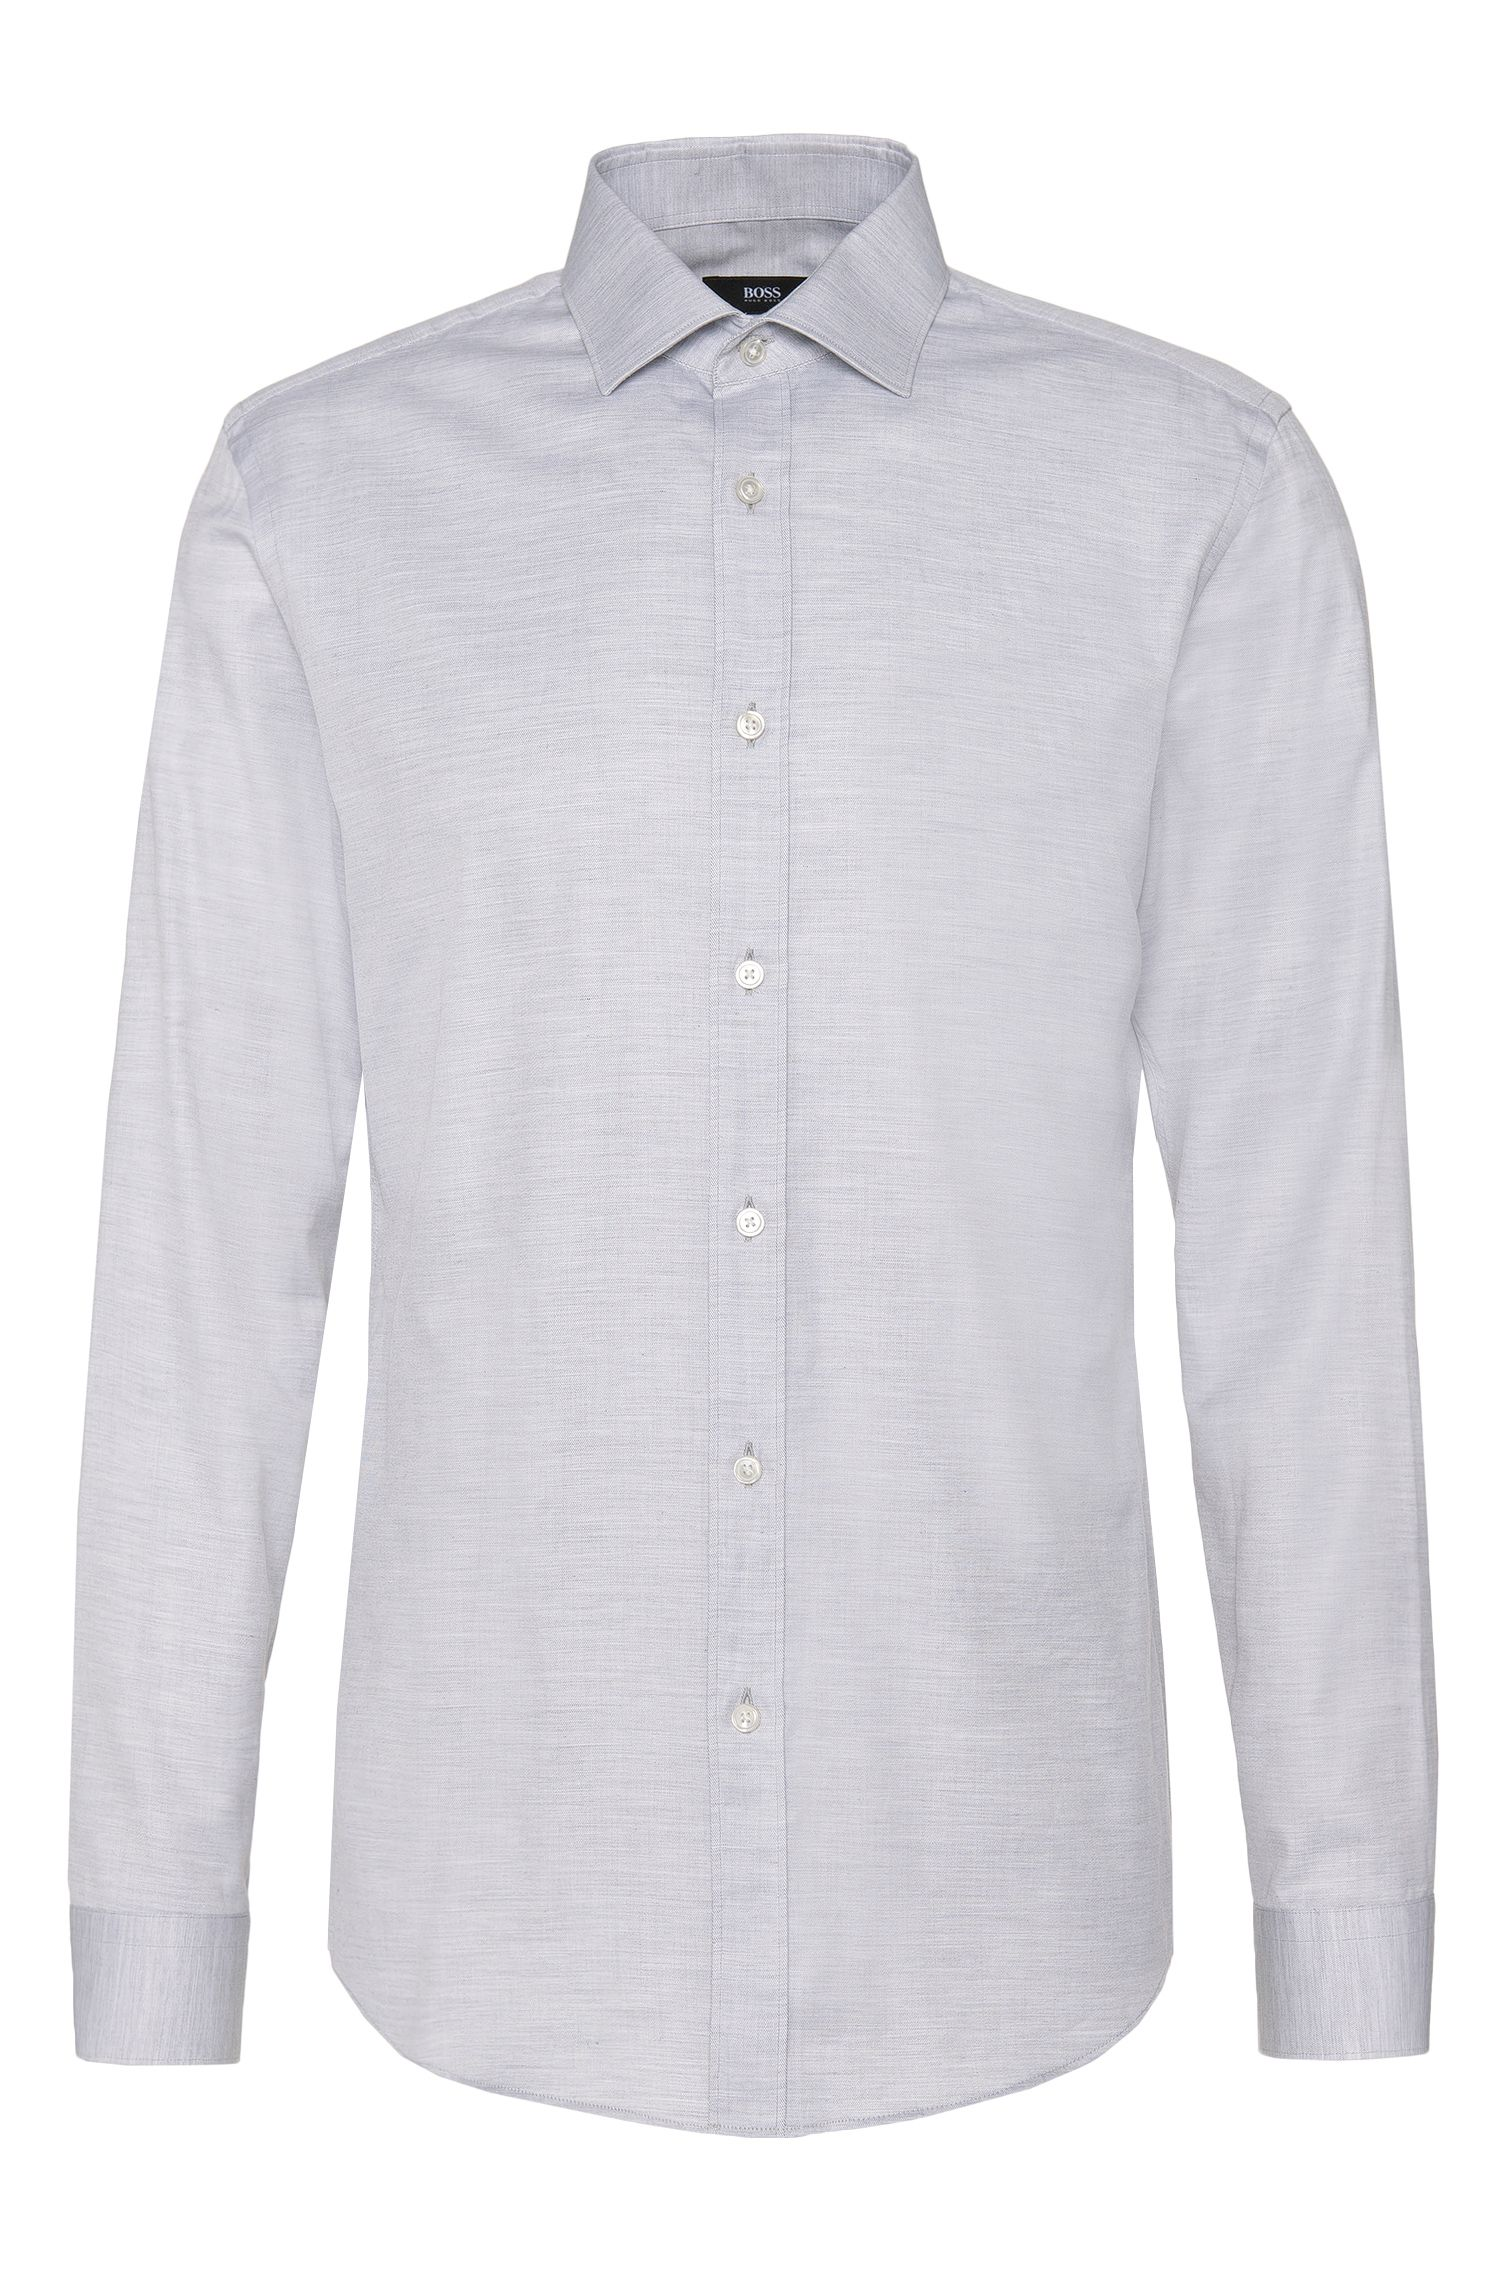 Mottled slim-fit shirt in cotton: 'Isaak'